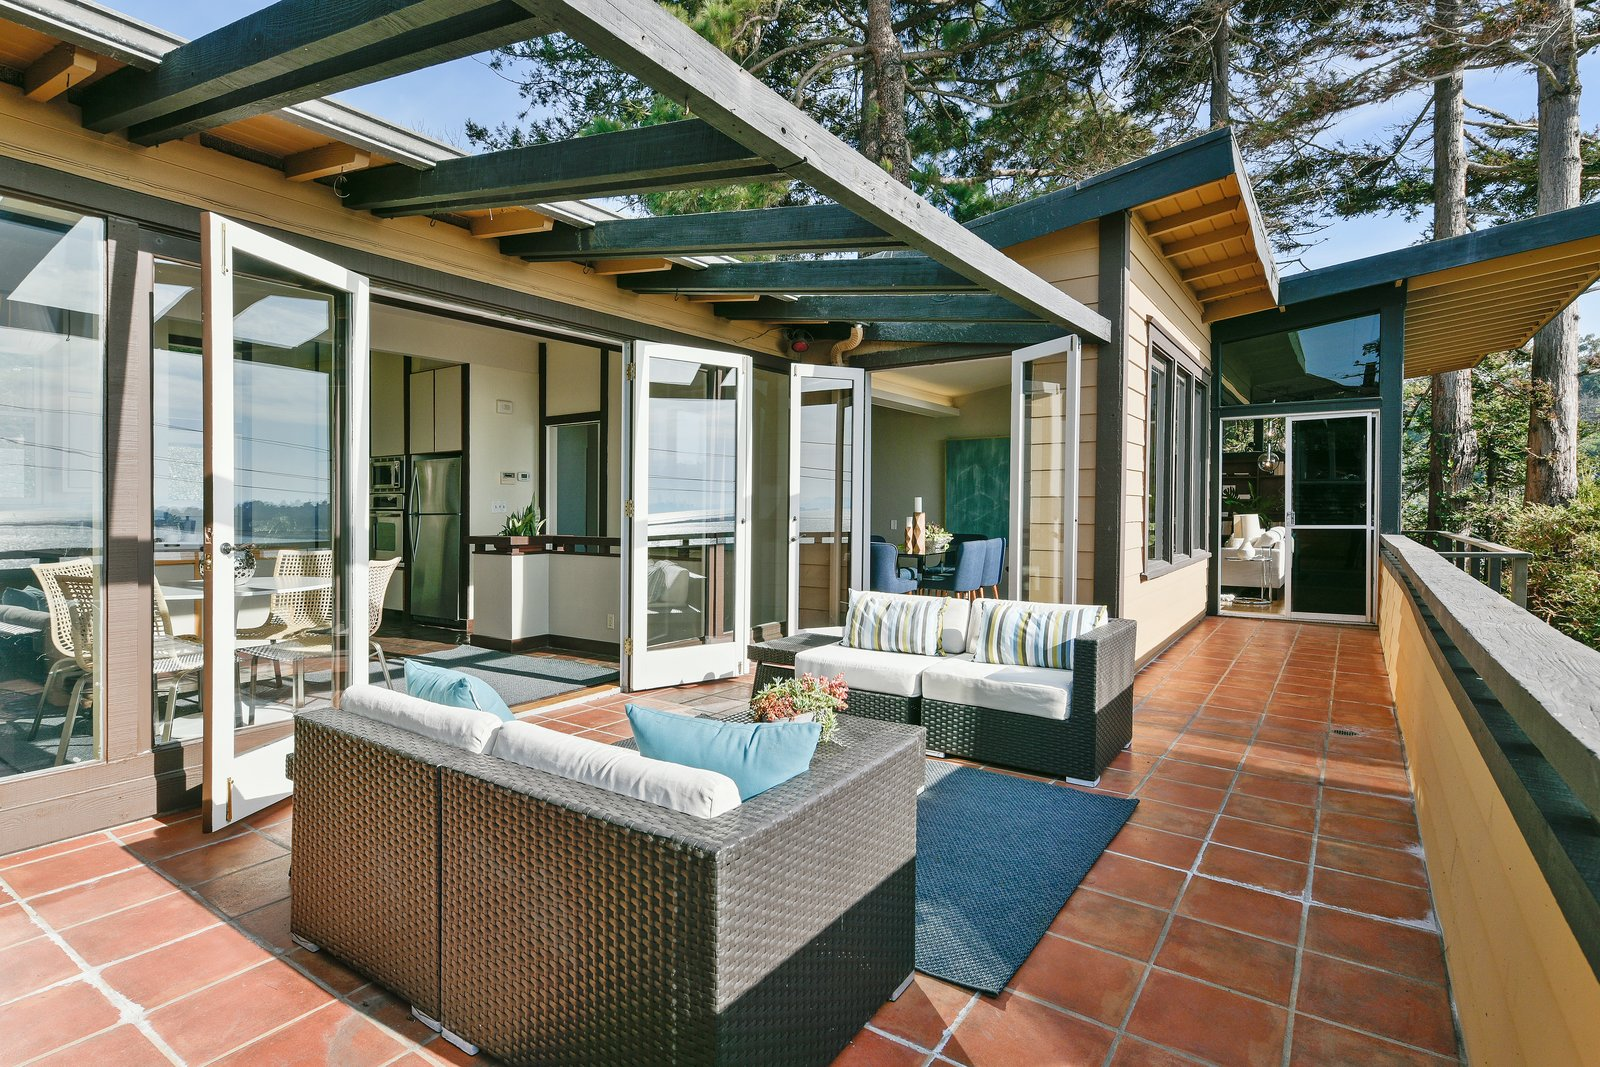 Outdoor, Large Patio, Porch, Deck, Trees, and Pavers Patio, Porch, Deck Exterior terraces wrap public living spaces.  A wooden pergola shades the exterior sitting space.  Photo 12 of 14 in A Bay Area Jewel With Golden Gate Views Wants $1.55M